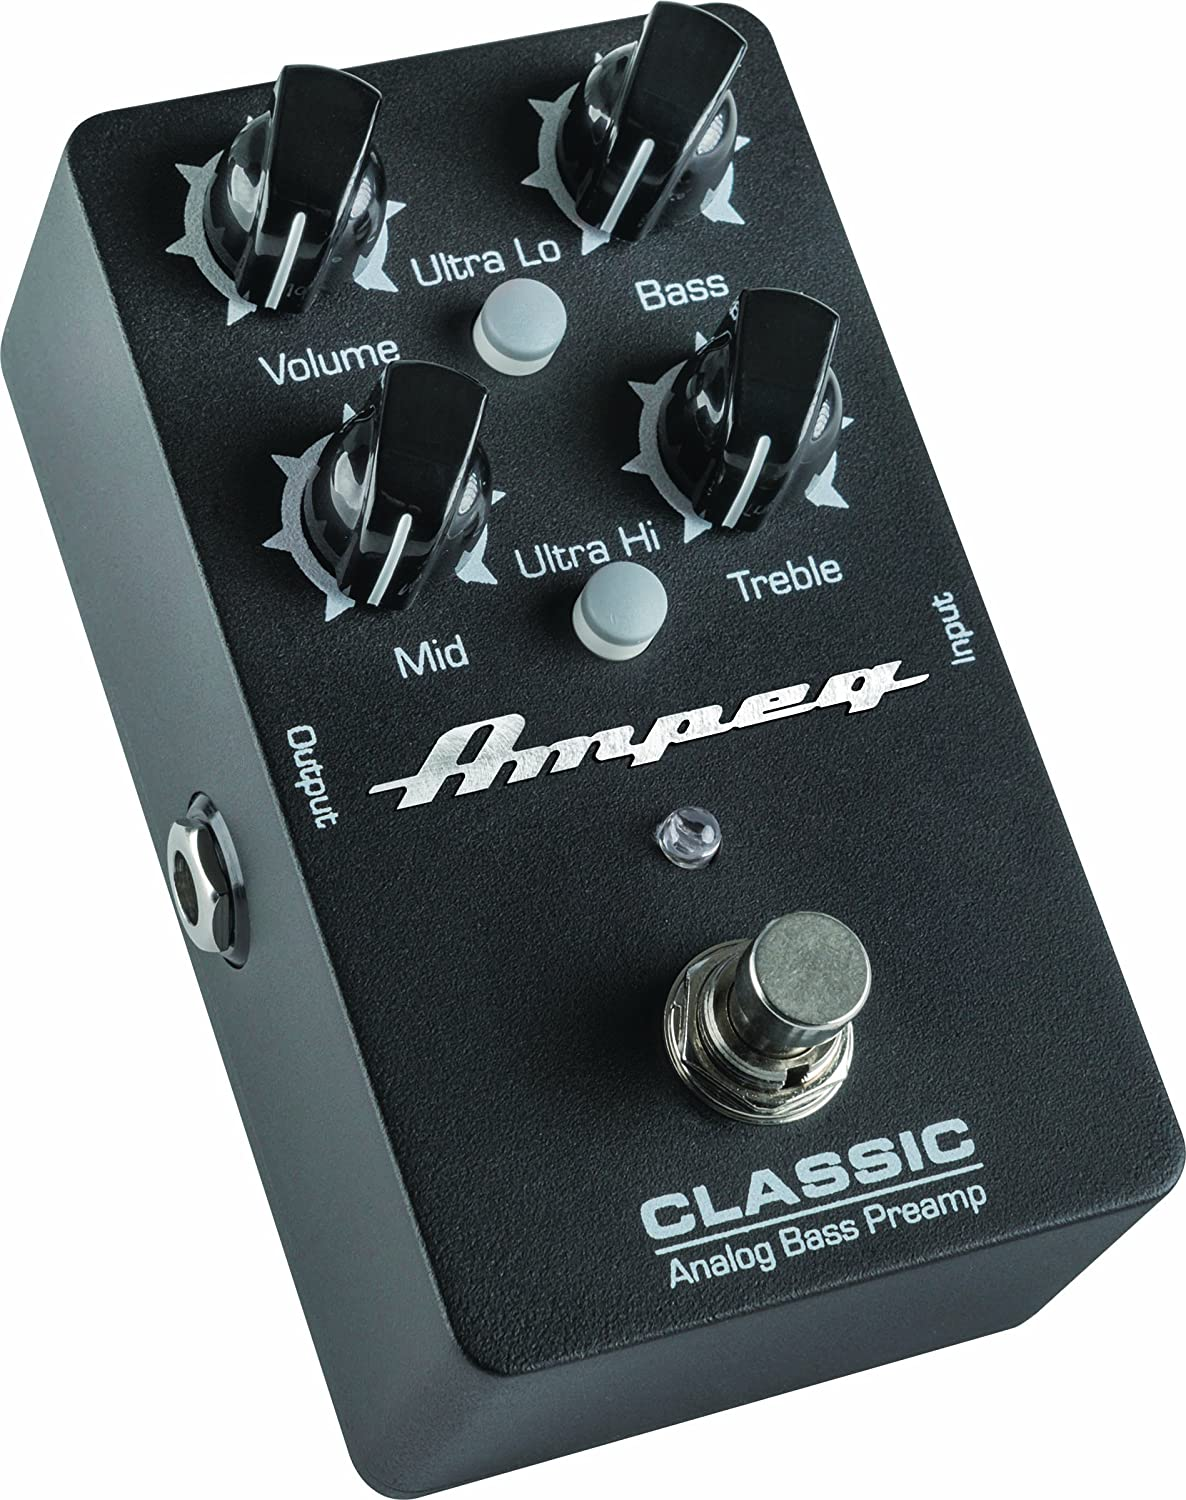 Ampeg Classic Analog Bass Preamp Pedal Loud Technologies Inc.